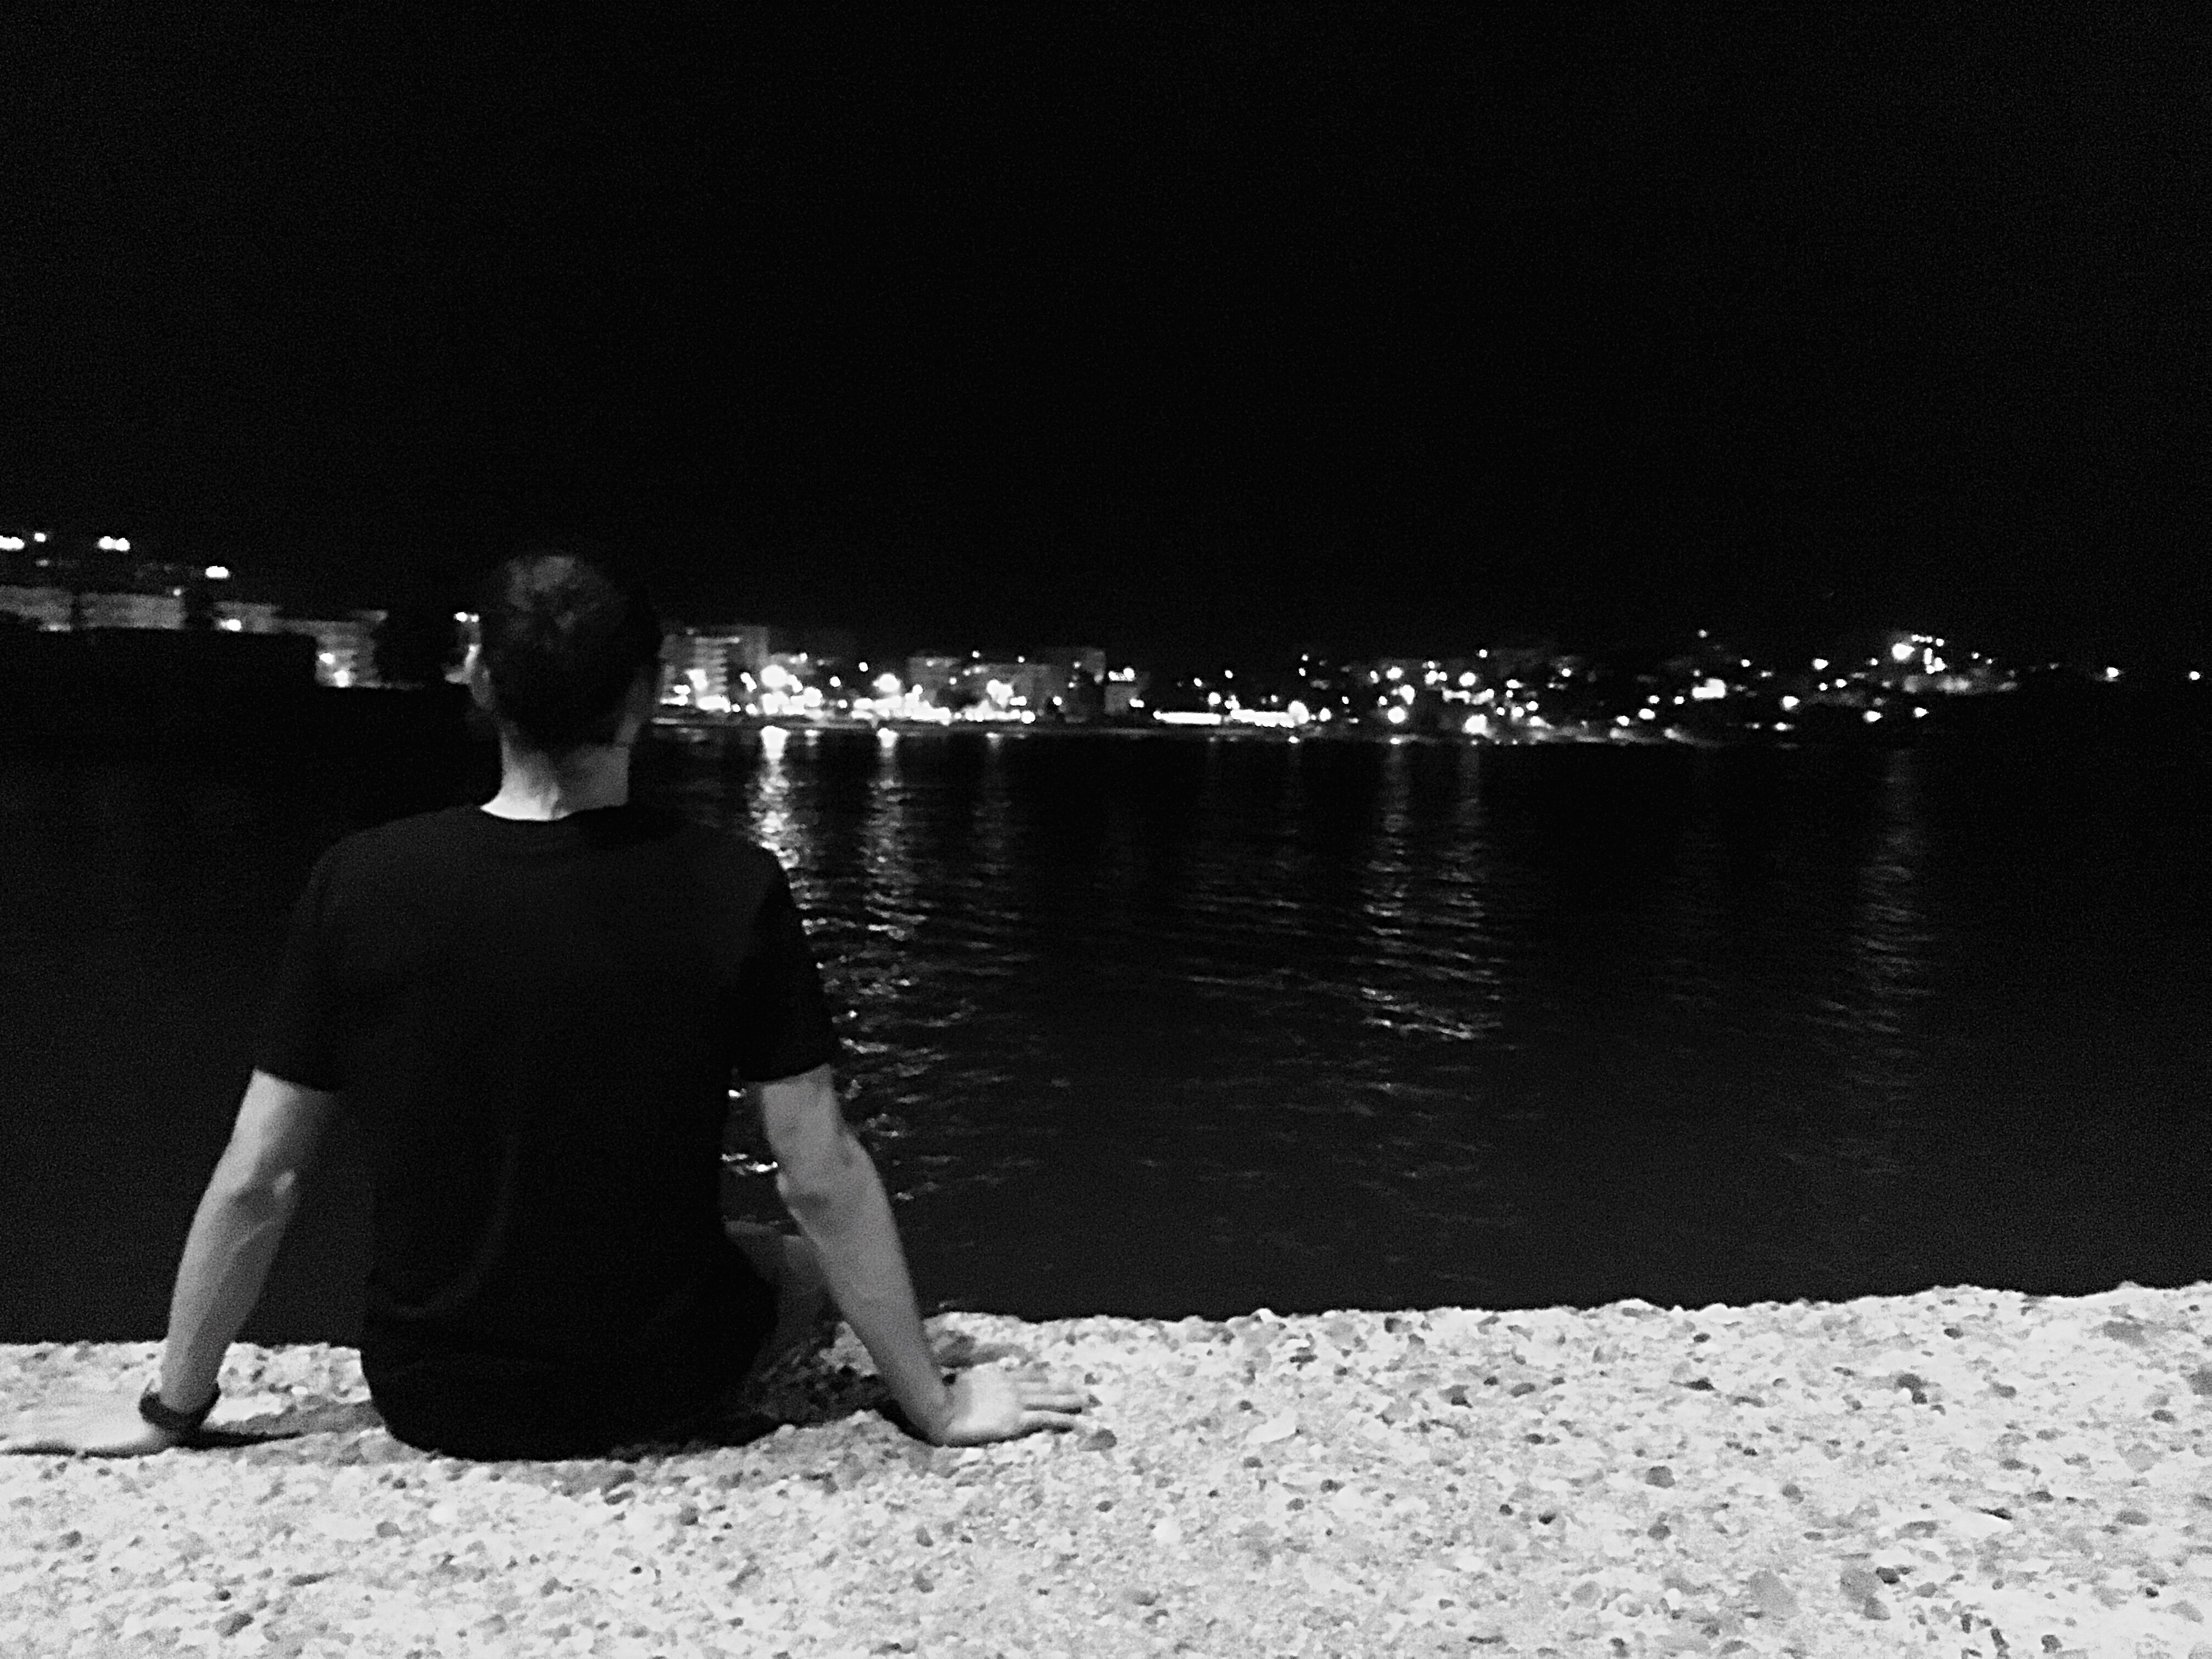 rear view, water, illuminated, sitting, night, men, relaxation, waist up, solitude, clear sky, tranquility, tranquil scene, calm, sea, vacations, getting away from it all, in front of, dark, scenics, remote